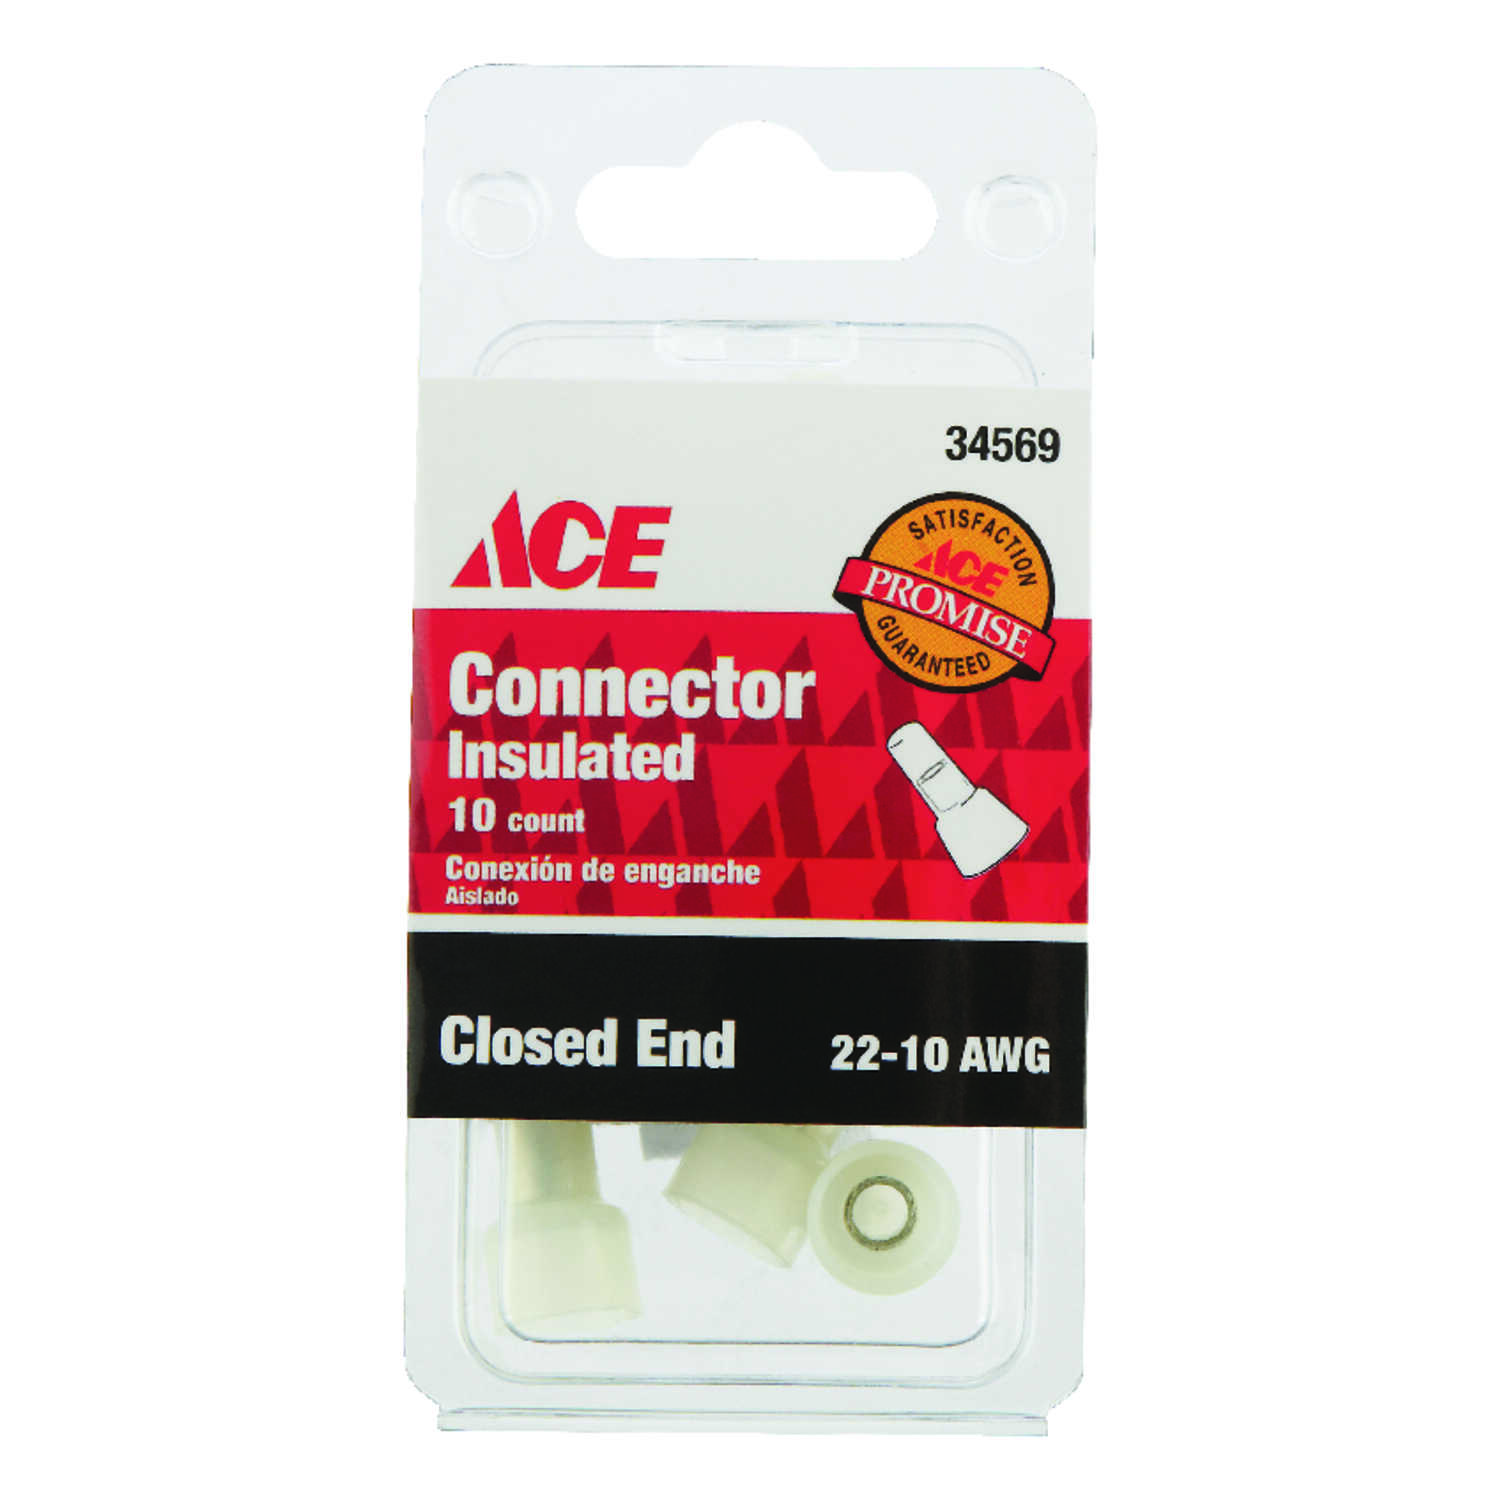 Ace  Closed End Connector  10  22-10 AWG Insulated Wire